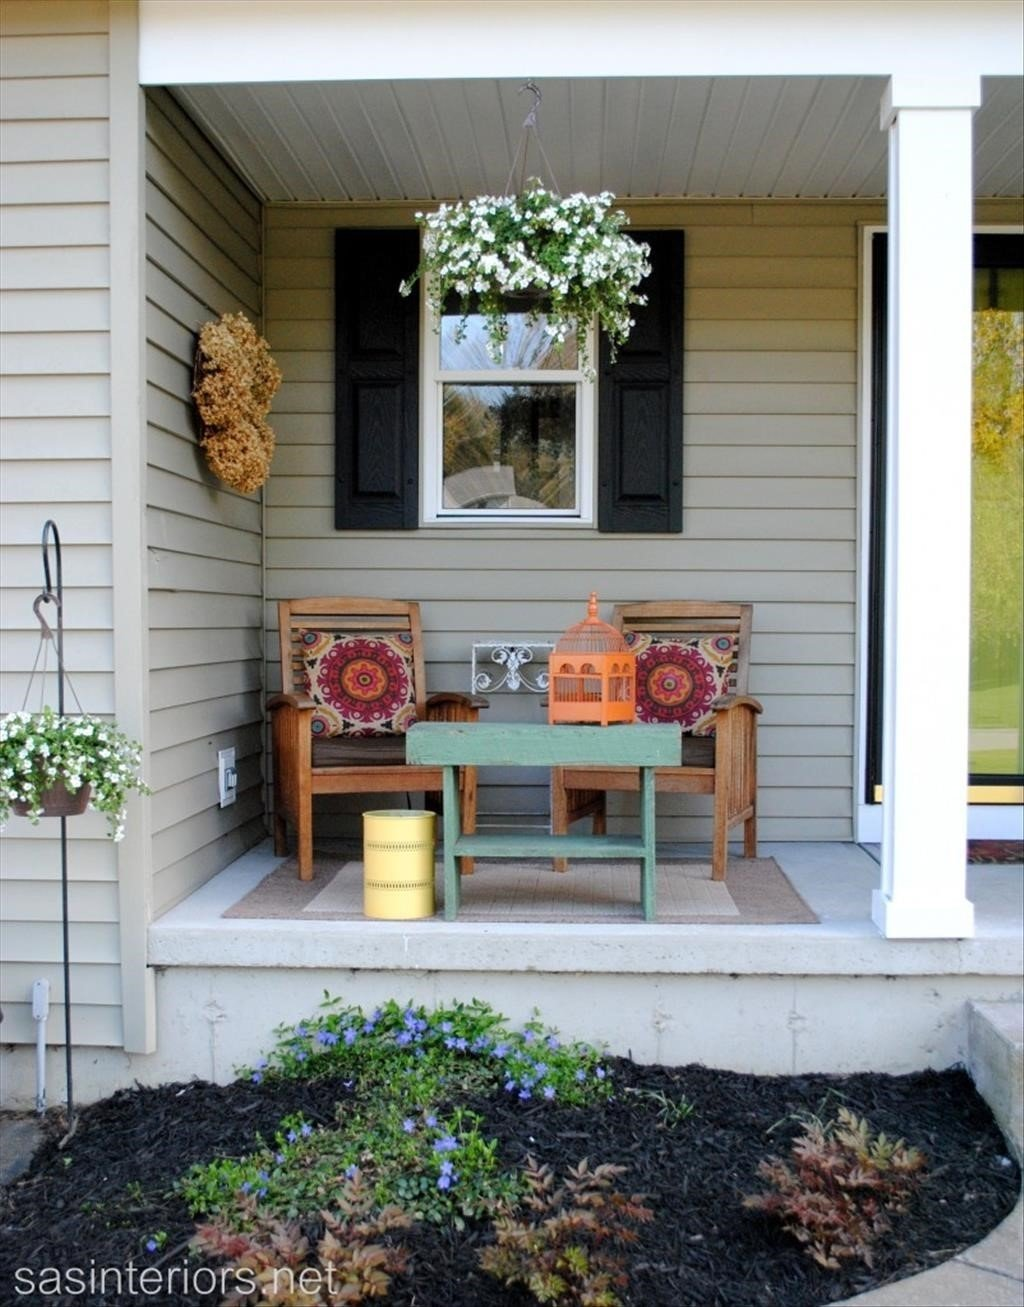 10 Spectacular Small Front Porch Ideas Pictures appealing small front porch seating ideas hi res wallpaper 2020